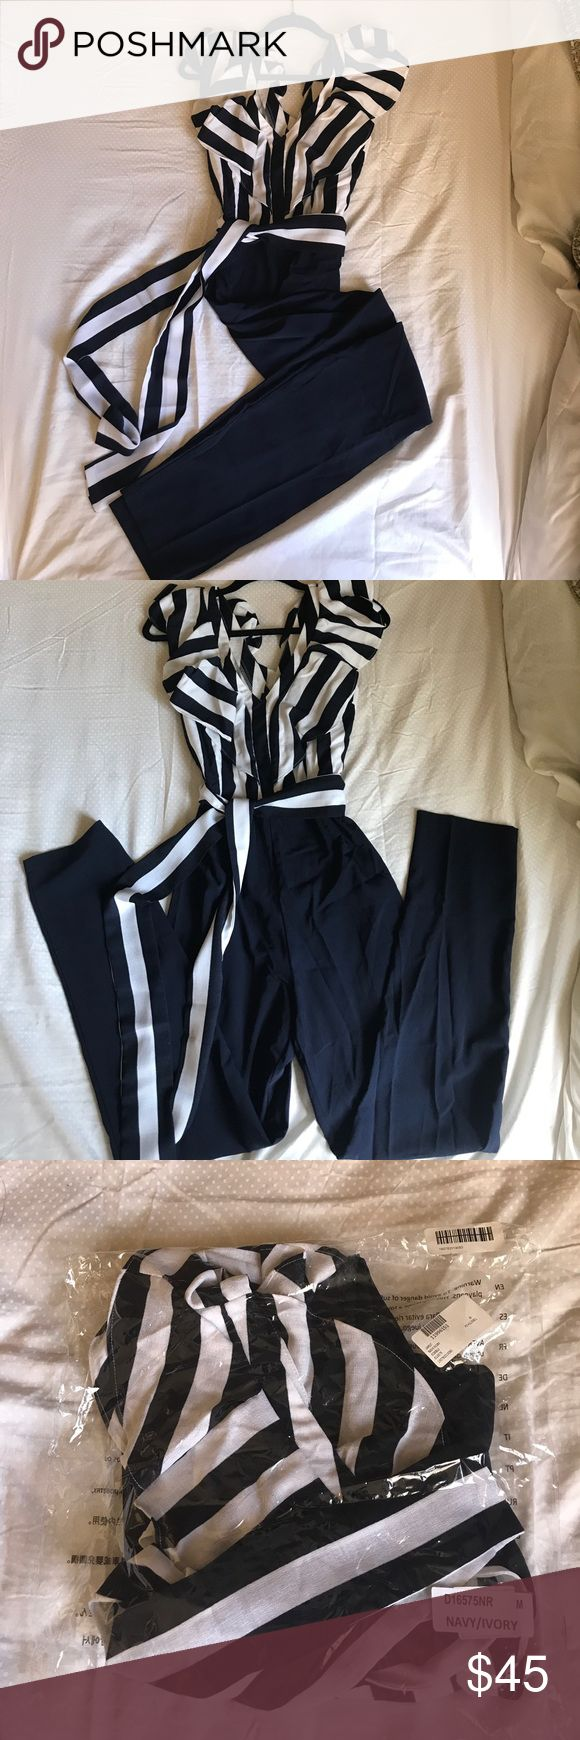 Soieblu Navy and White Striped Jumpsuit Brand New Never Worn! Has only been taken out of the bag to try it on and take a picture.  SO SO cute but it's too small for me!!!   Size medium long jumper.  From Nordstrom Rack online. Soieblu Pants Jumpsuits & Rompers